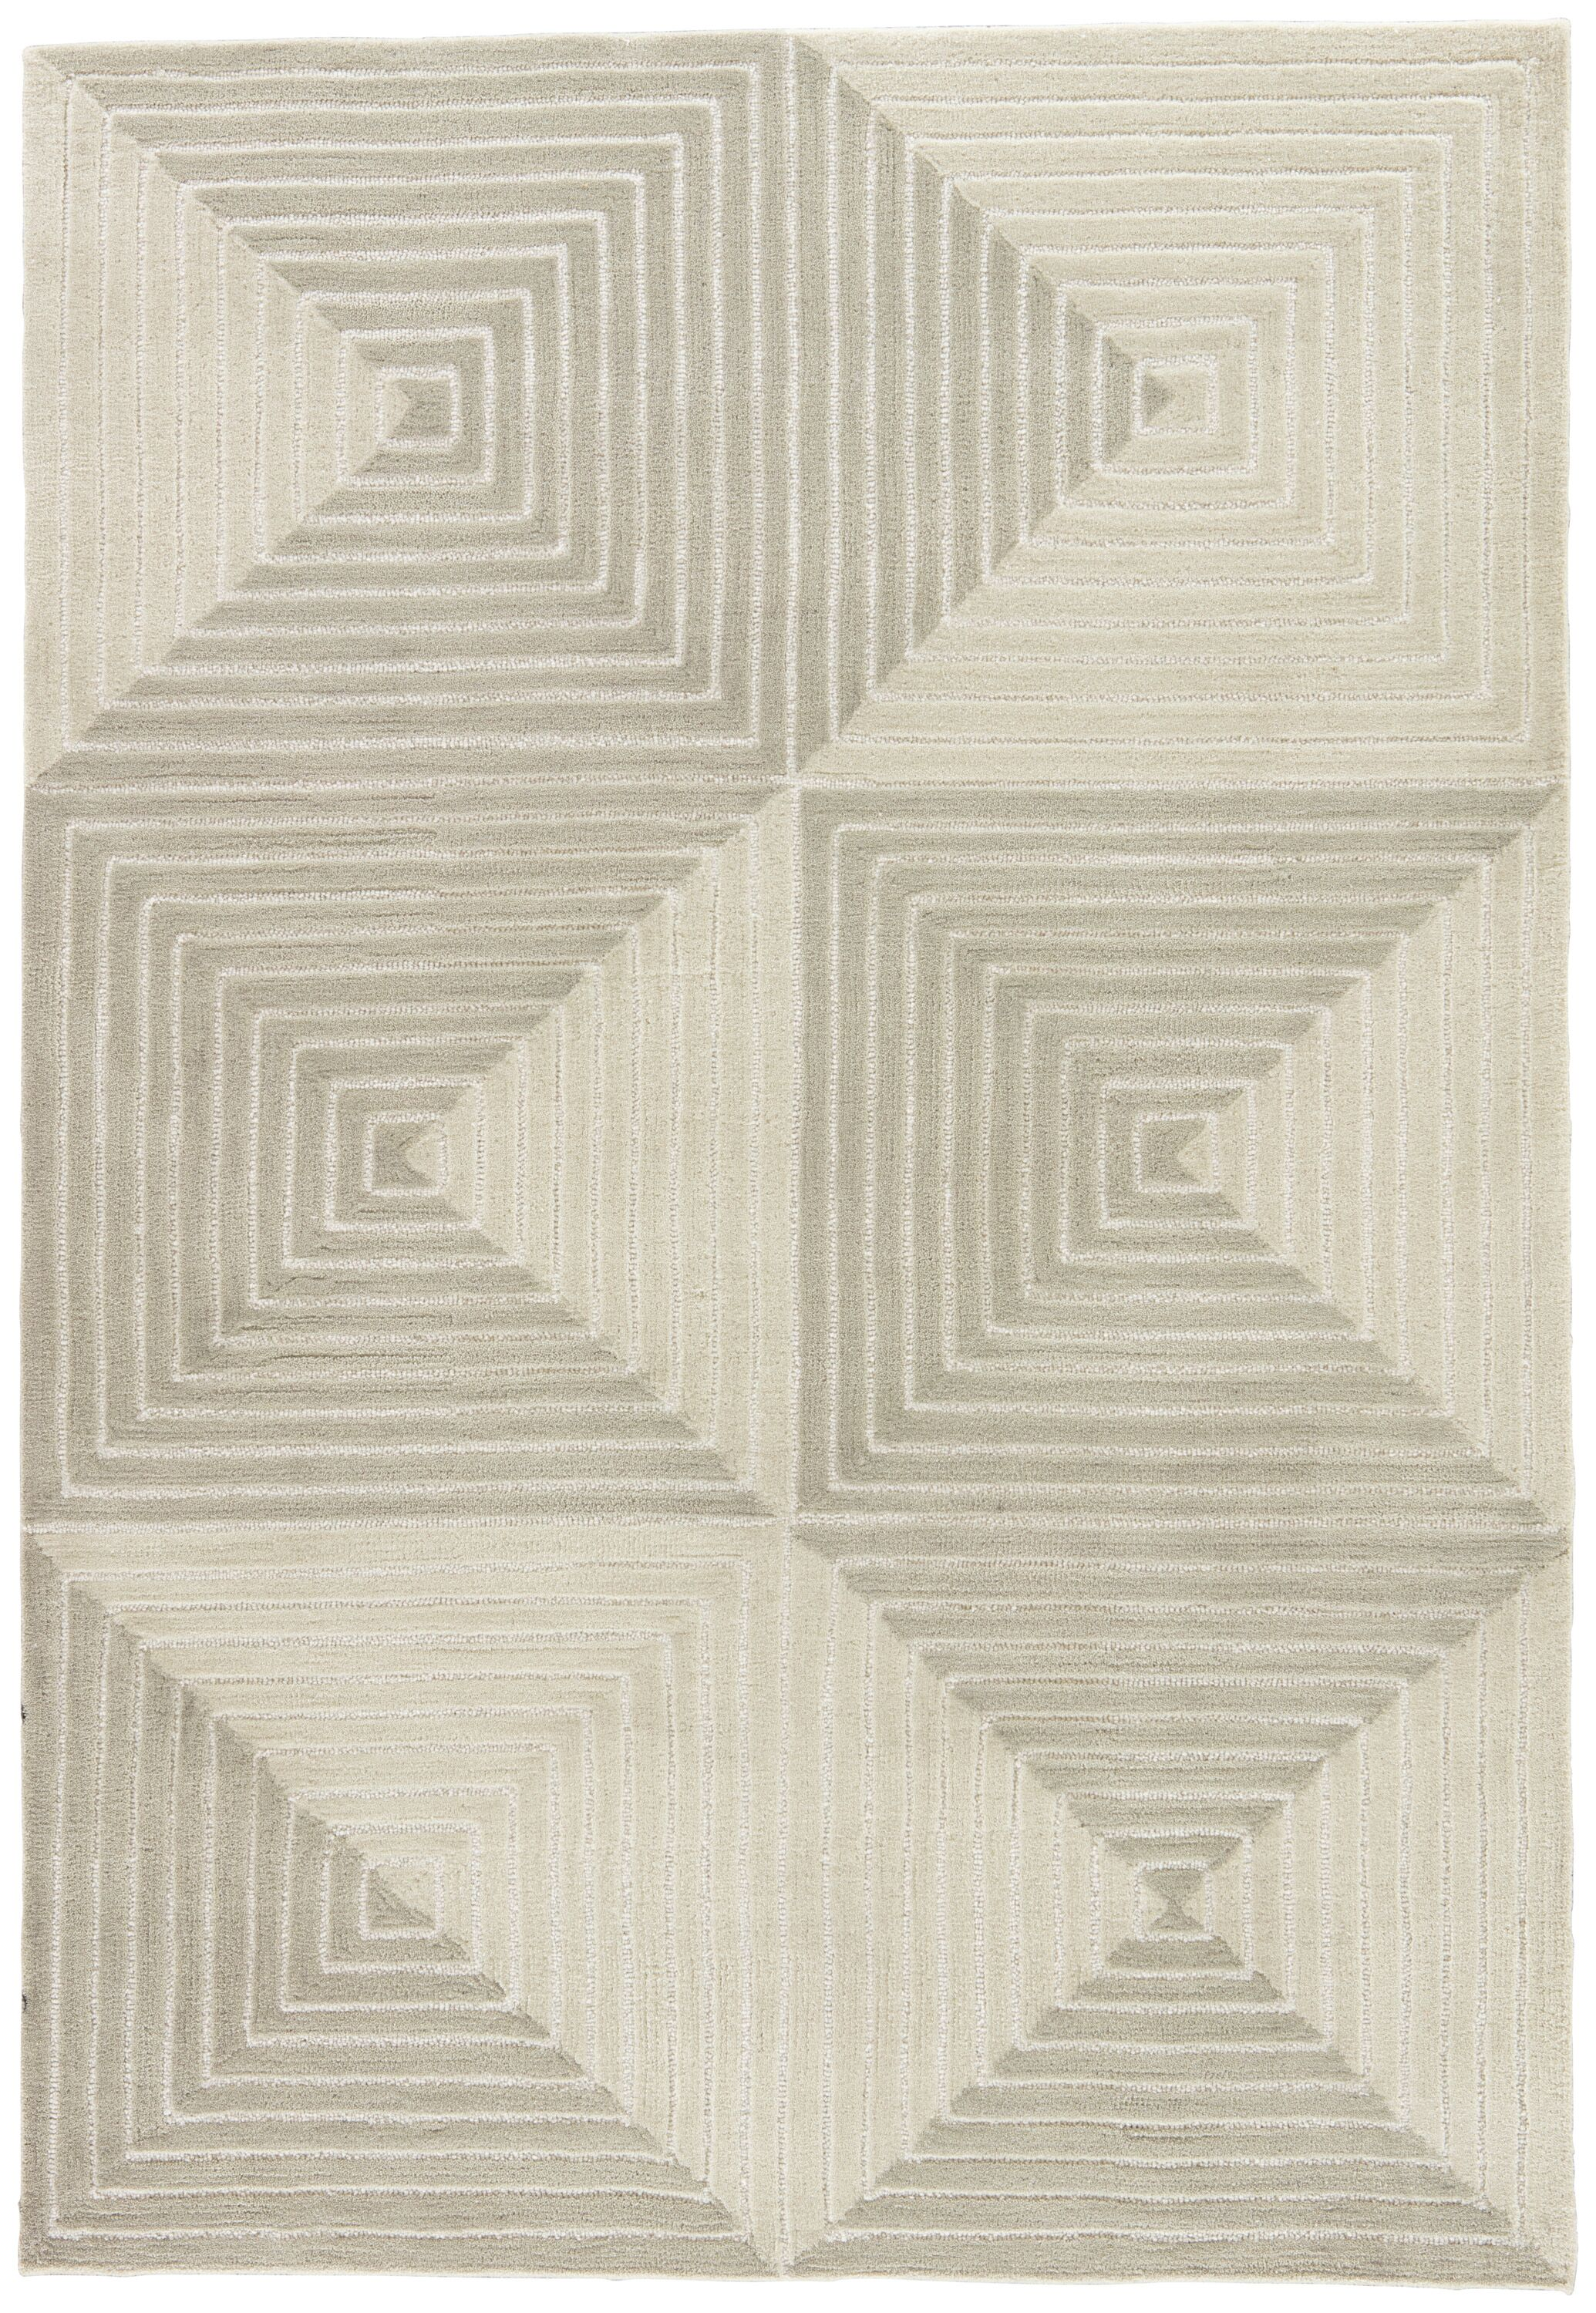 Zaydan Hand-Tufted Gray Area Rug Rug Size: Rectangle 5' x 7'6